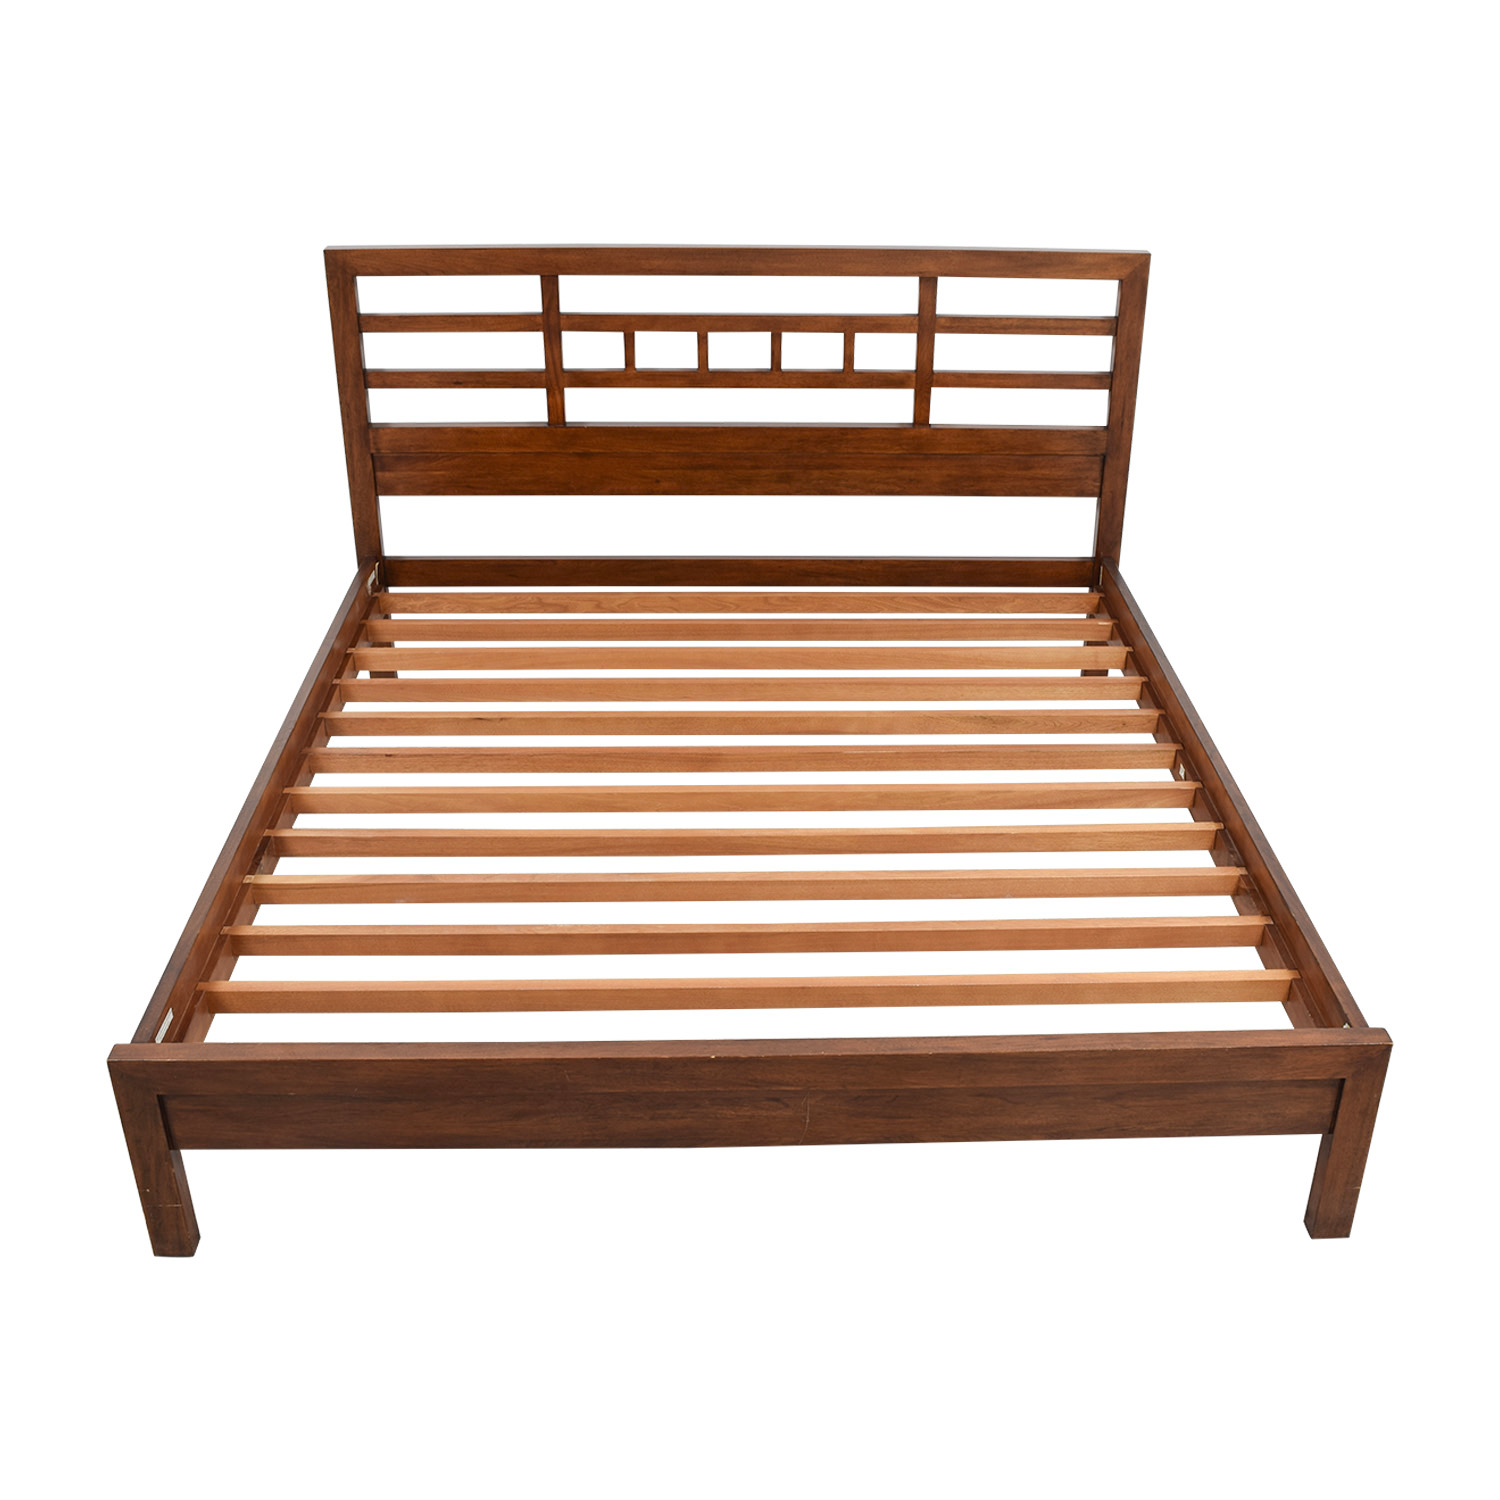 Room & Board Room & Board King Platform Bed Frame second hand